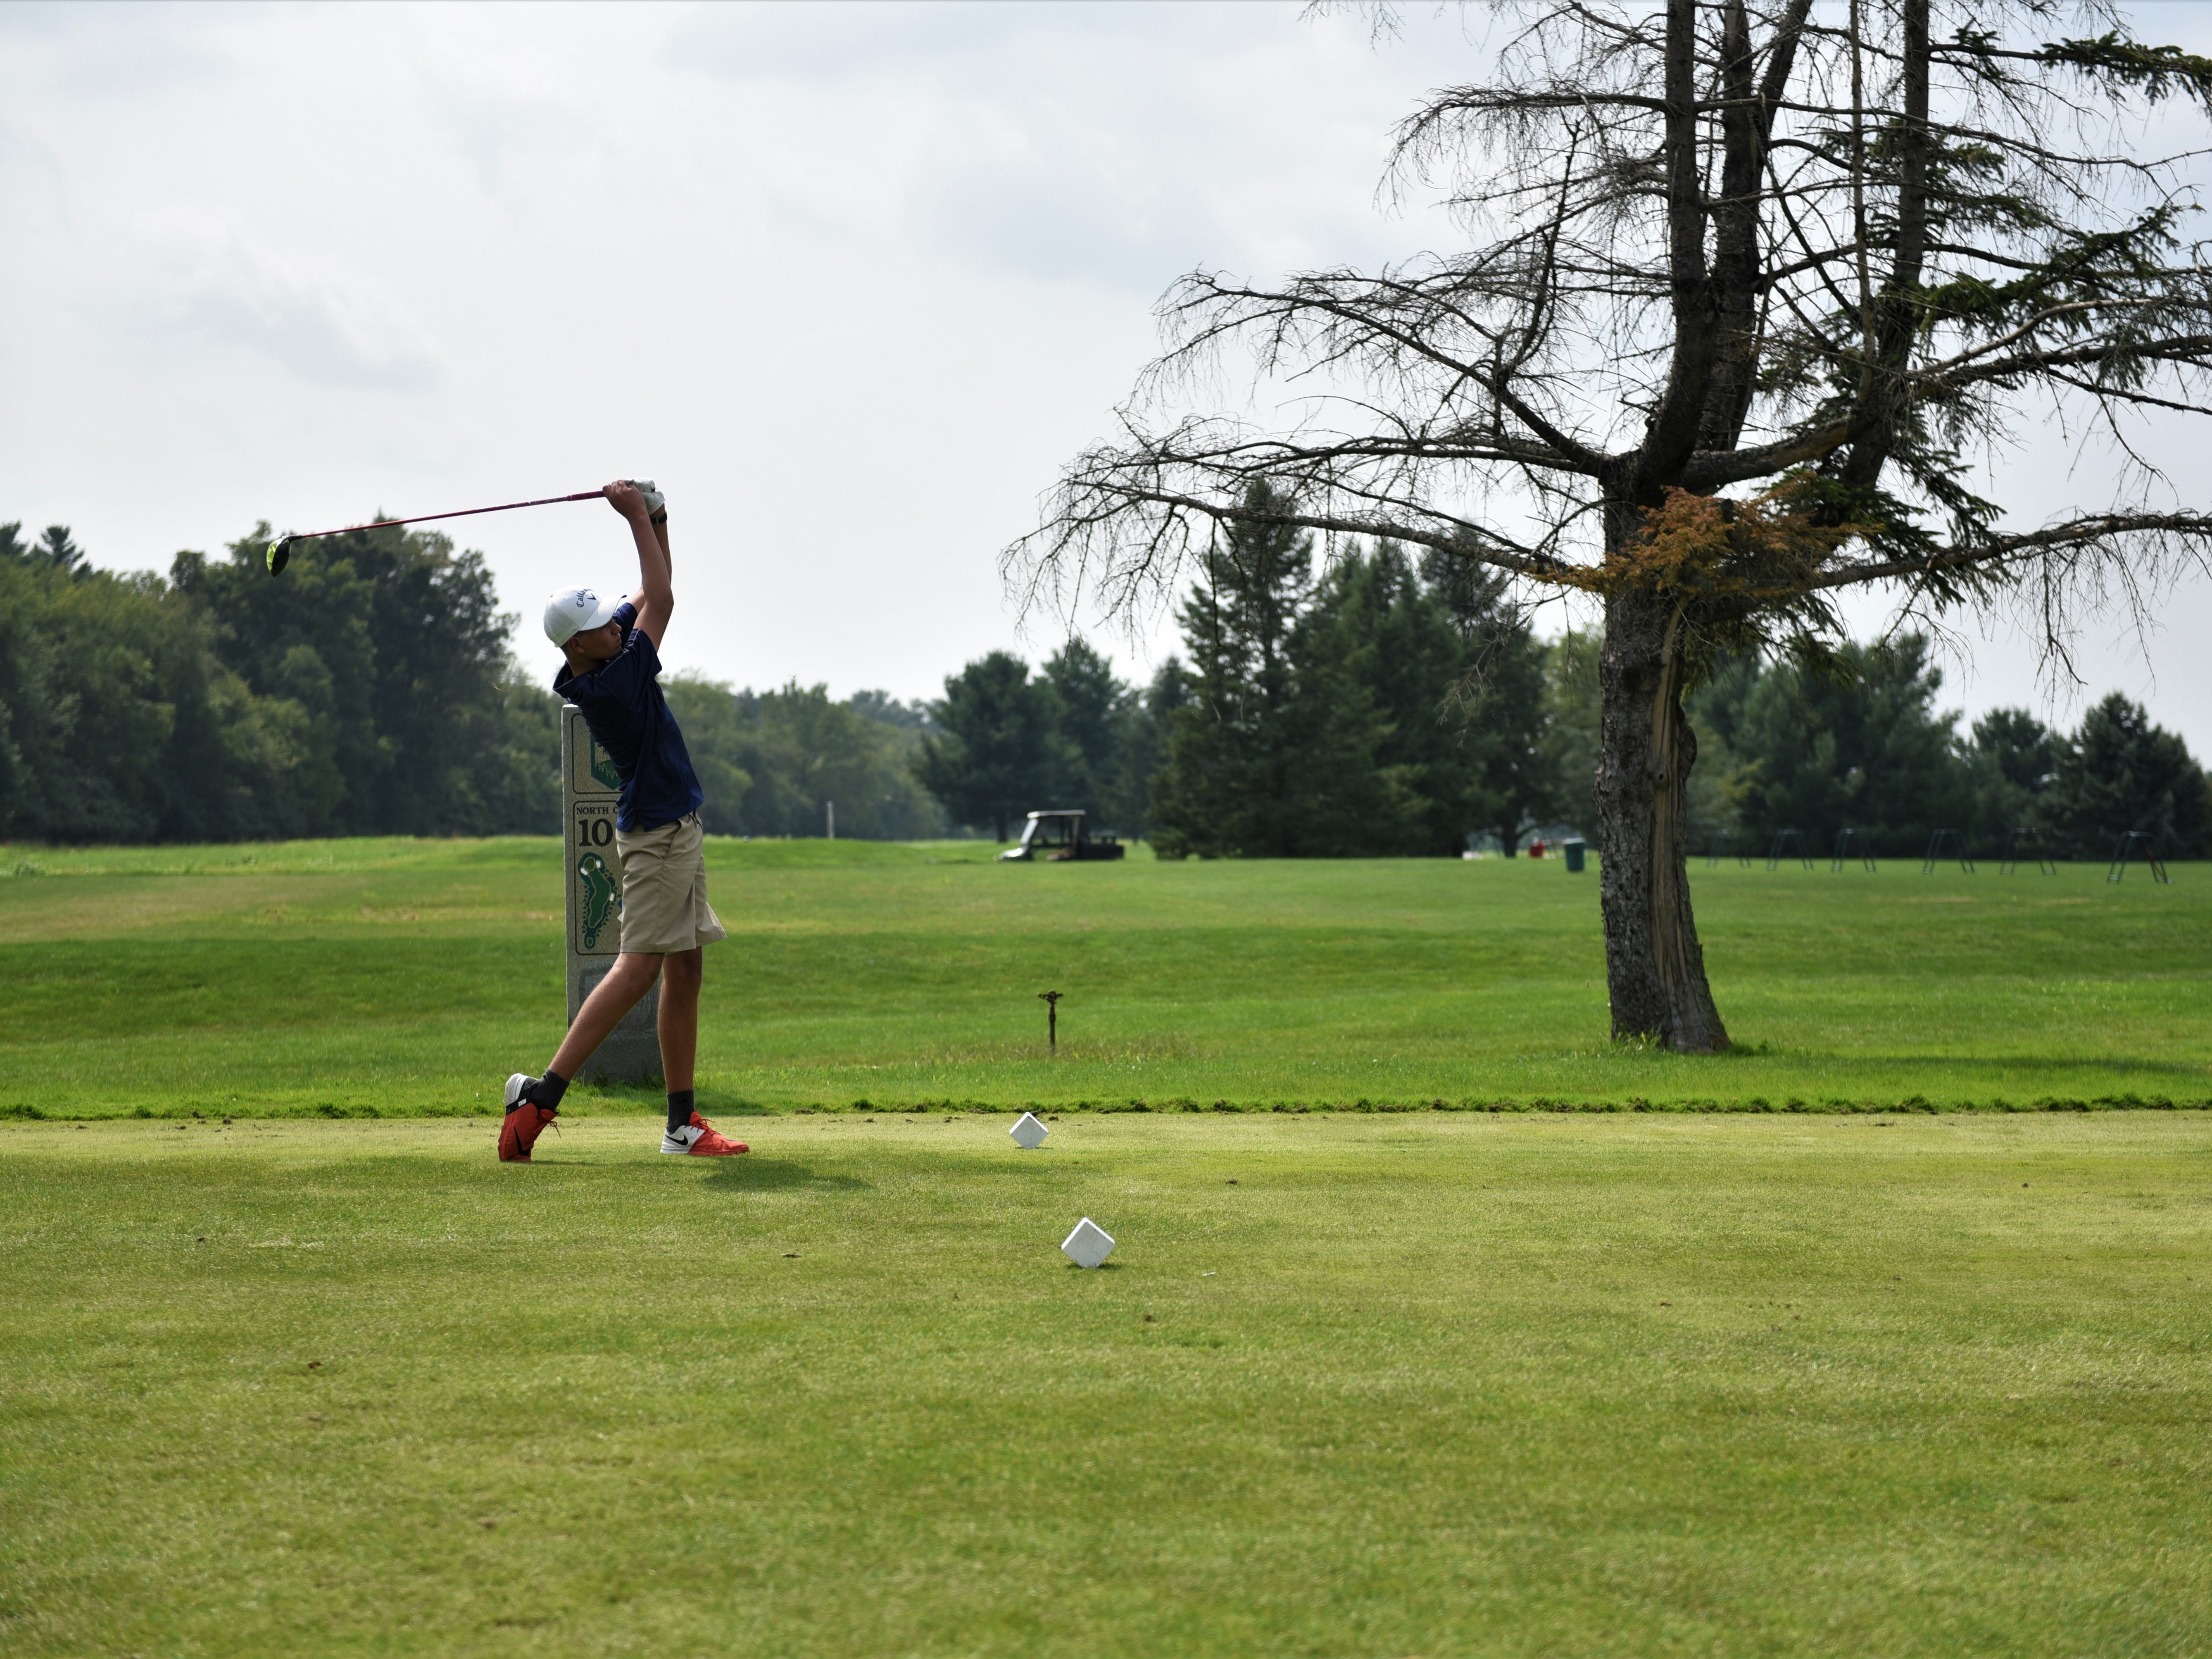 Biglerville's Daniel Hartman, tees off on the 10th hole during the Division III golf match at the South Hills Golf Course on Aug. 27, 2018.